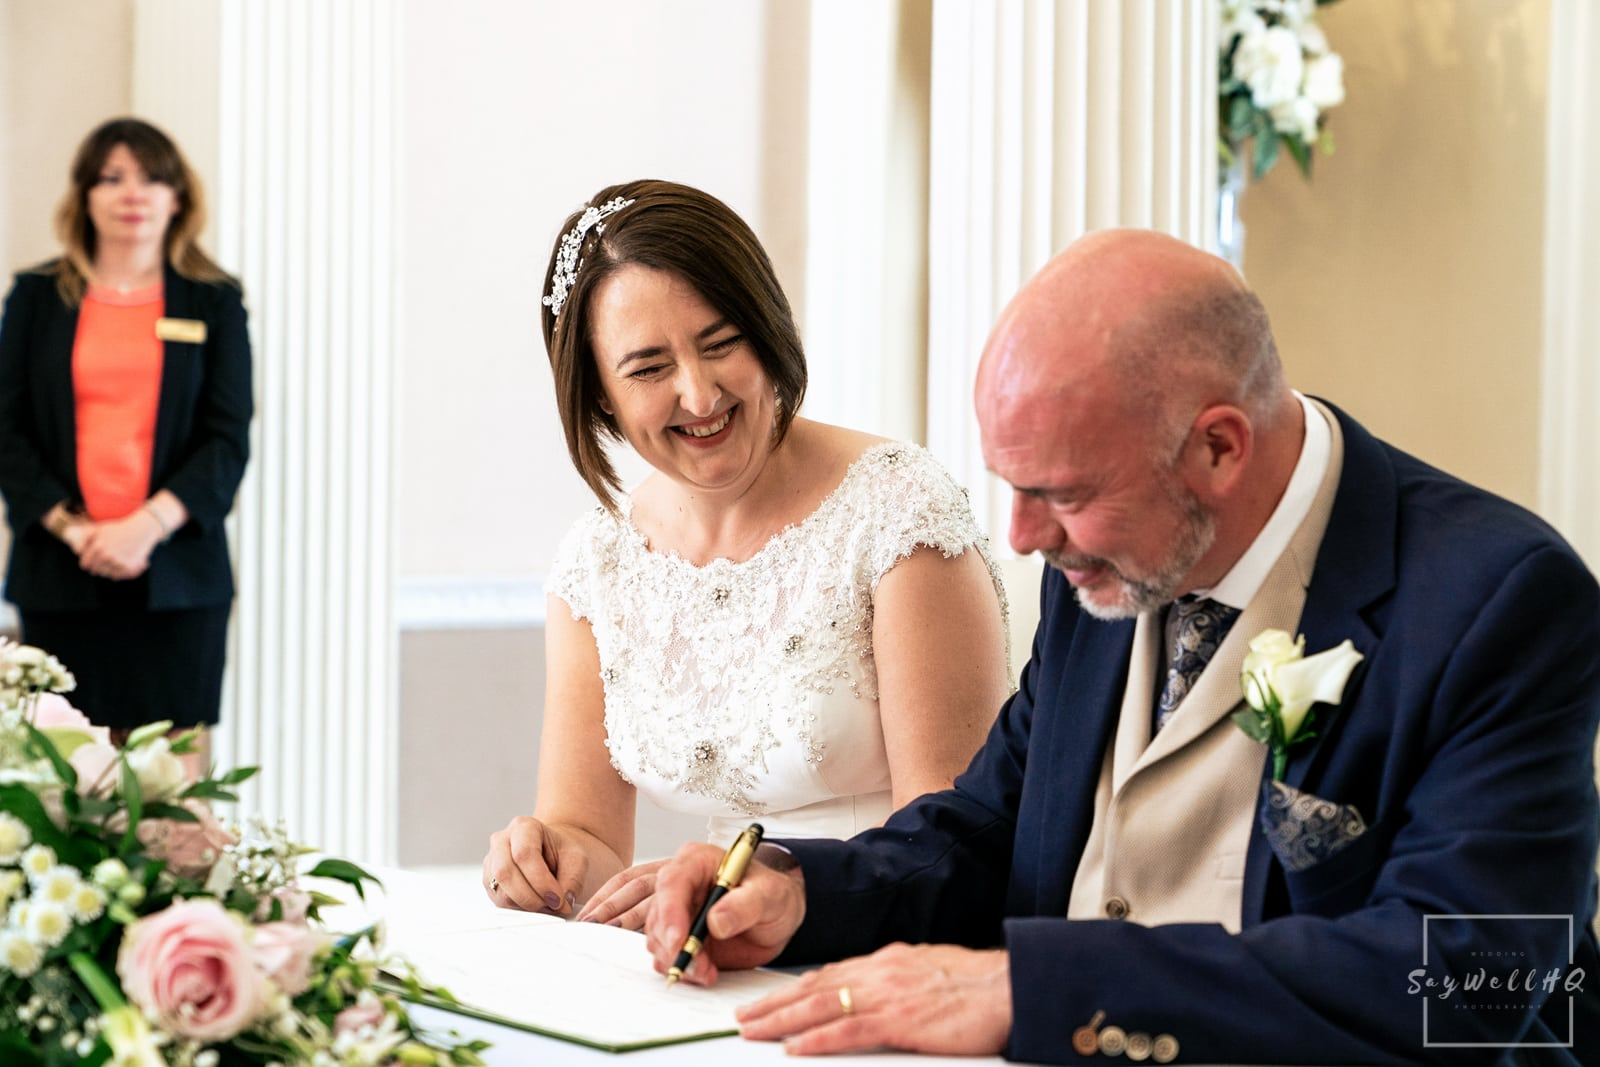 Colwick Hall Wedding Photography + Colwick Hall Wedding Photographer + bride and groom sign the wedding register during their wedding ceremony at Colwick Hall